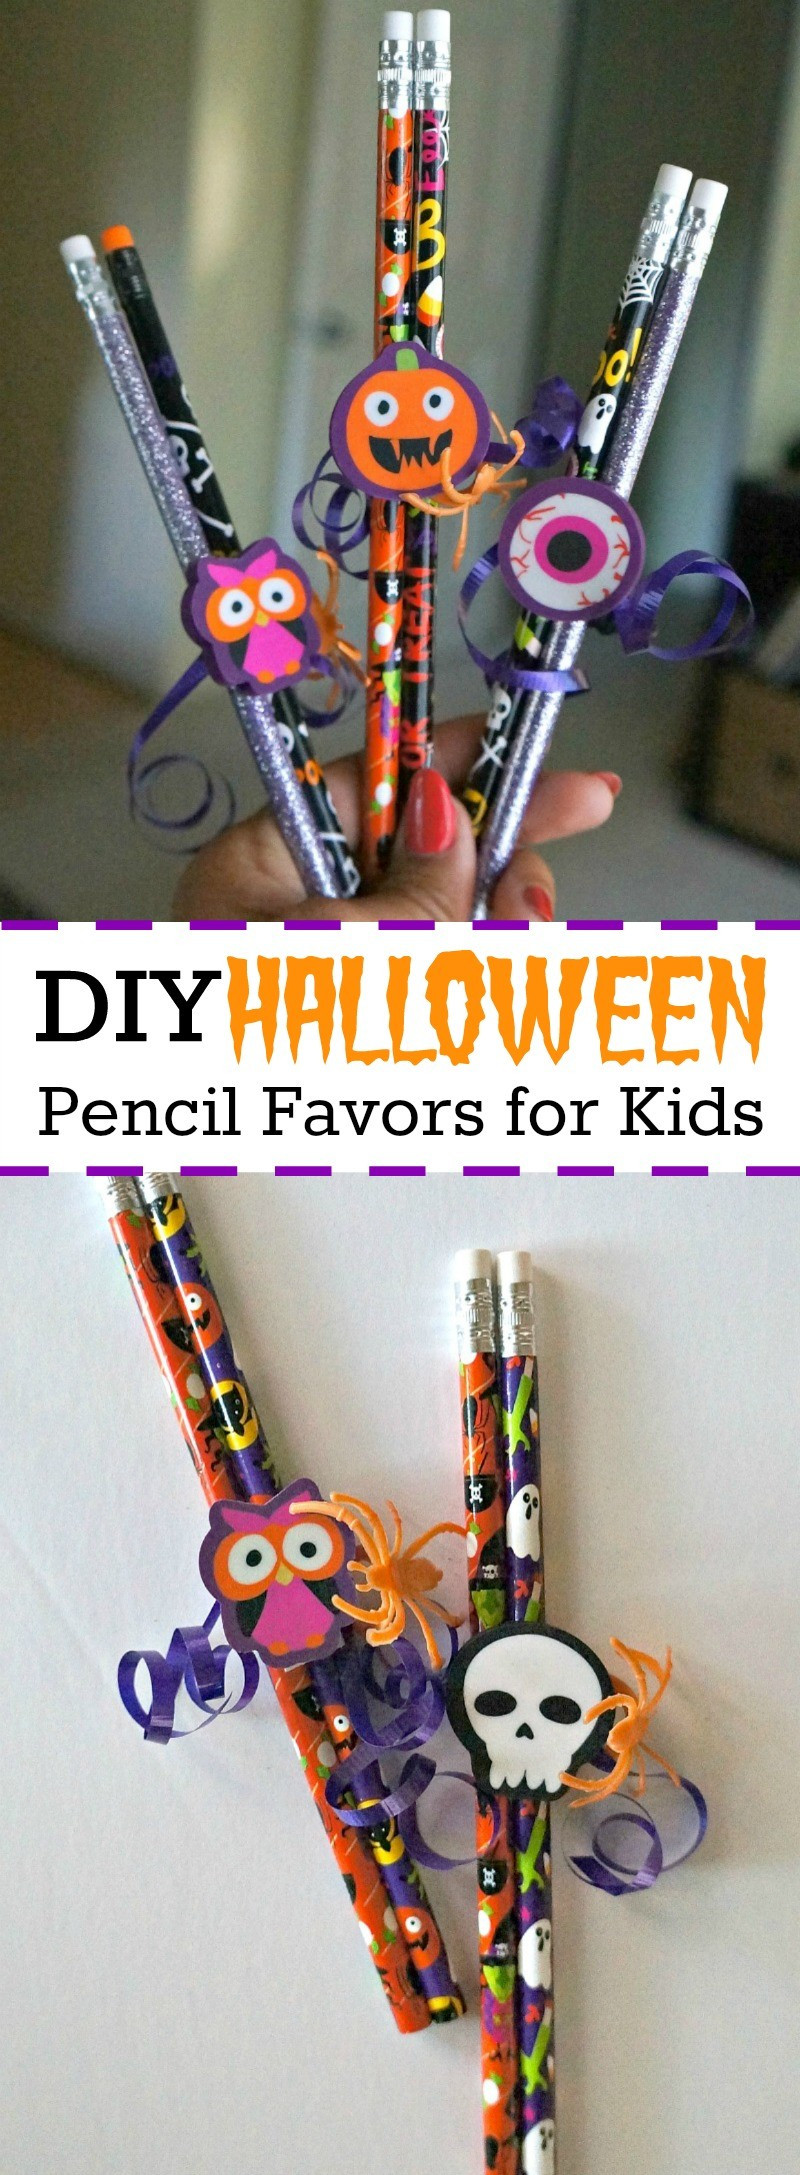 Best ideas about DIY Kids Party Favors . Save or Pin DIY Halloween Pencil Party Favors for Kids No Candy Now.